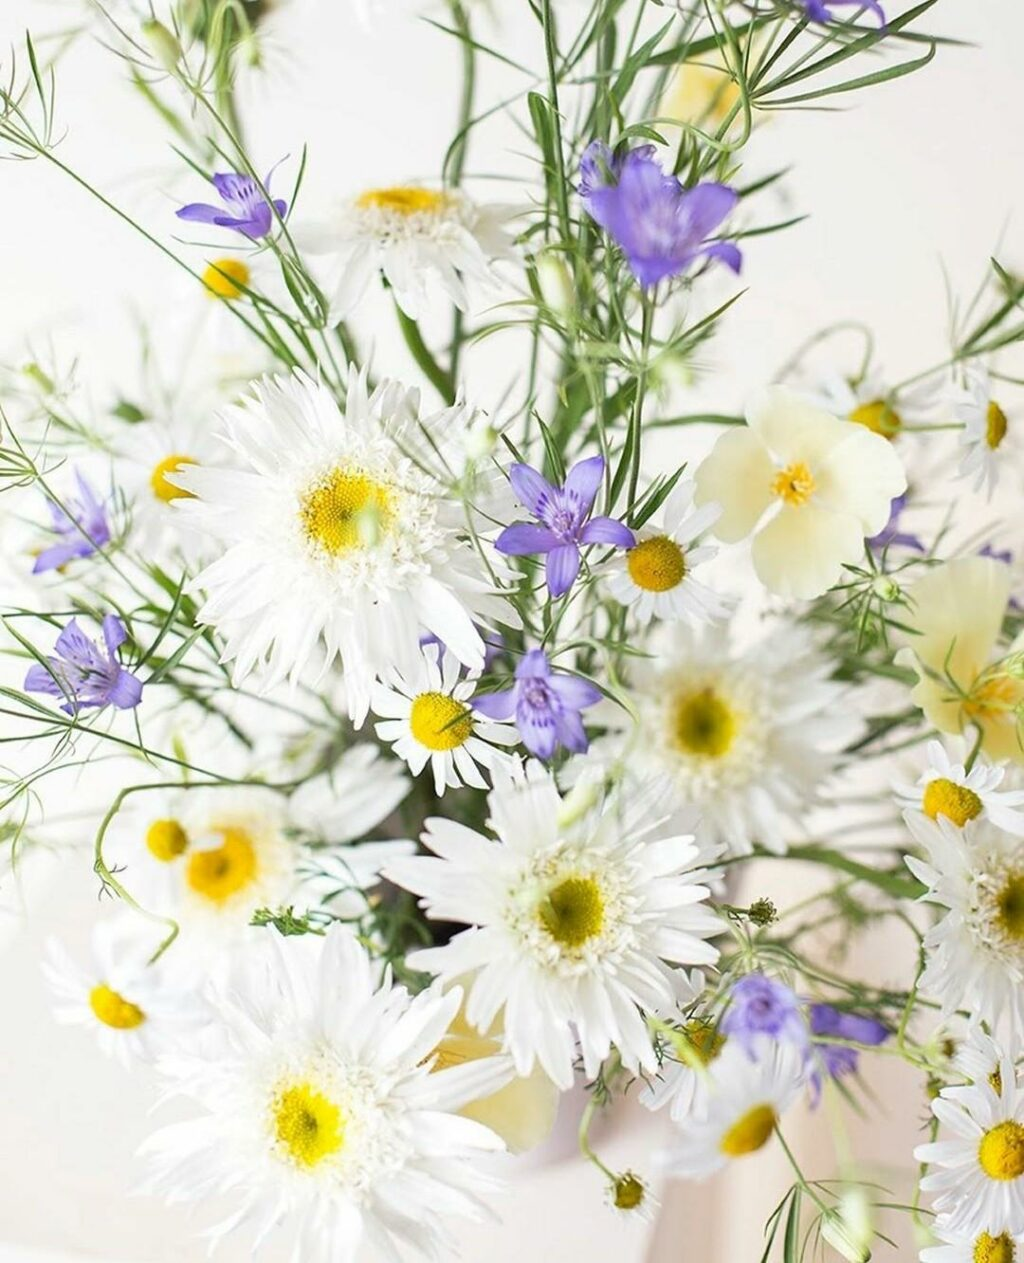 white daisies and violet harebells by Aesme Studios